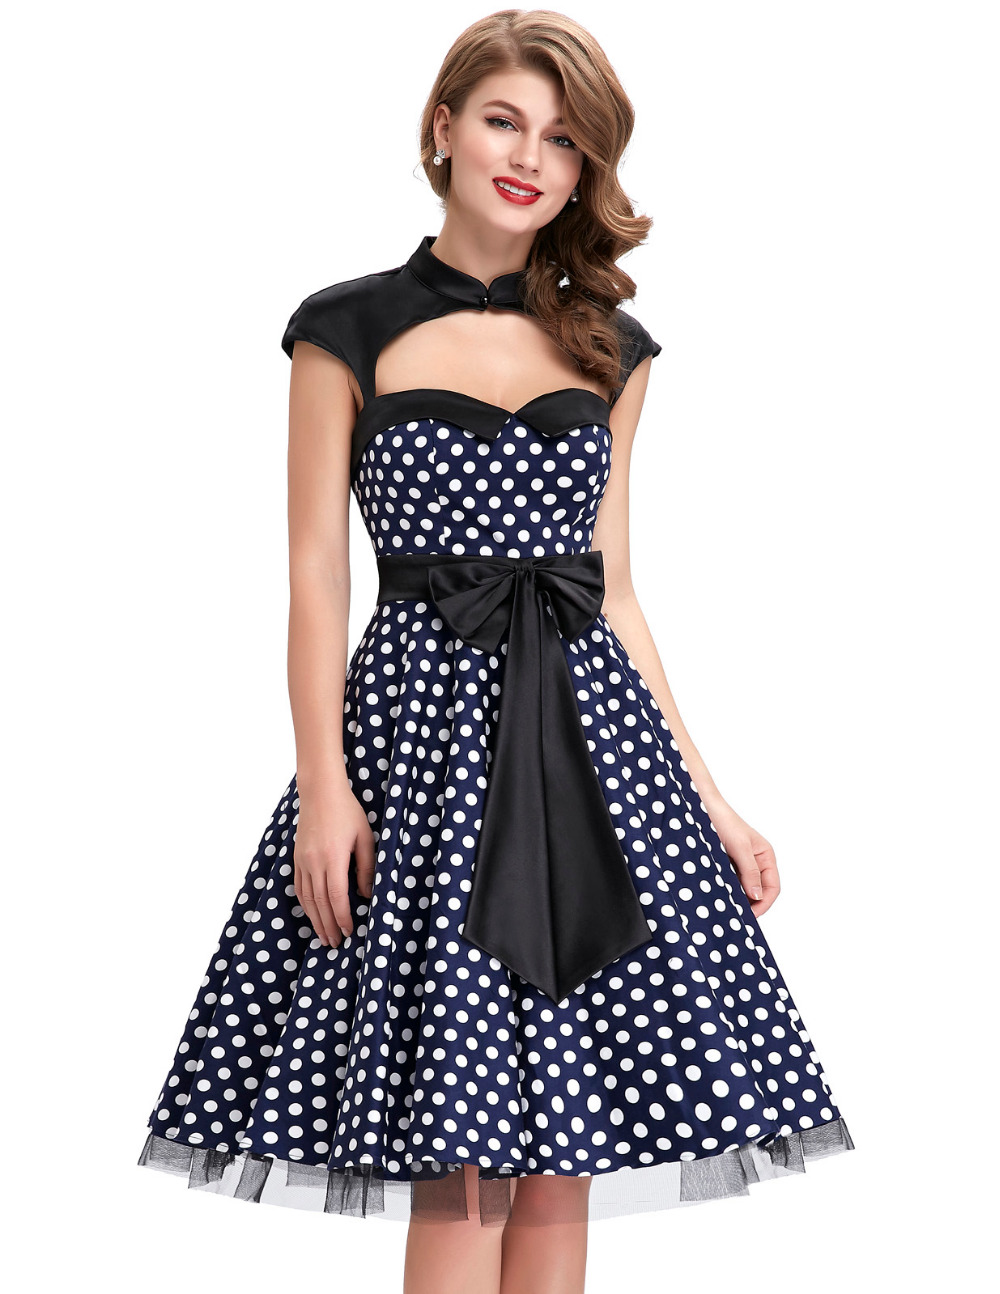 Find a great casual dress selection at gusajigadexe.cf Shop casual knit & woven styles as well as t-shirt dresses, shifts, maxis, and more from the best brands. Free shipping & returns.